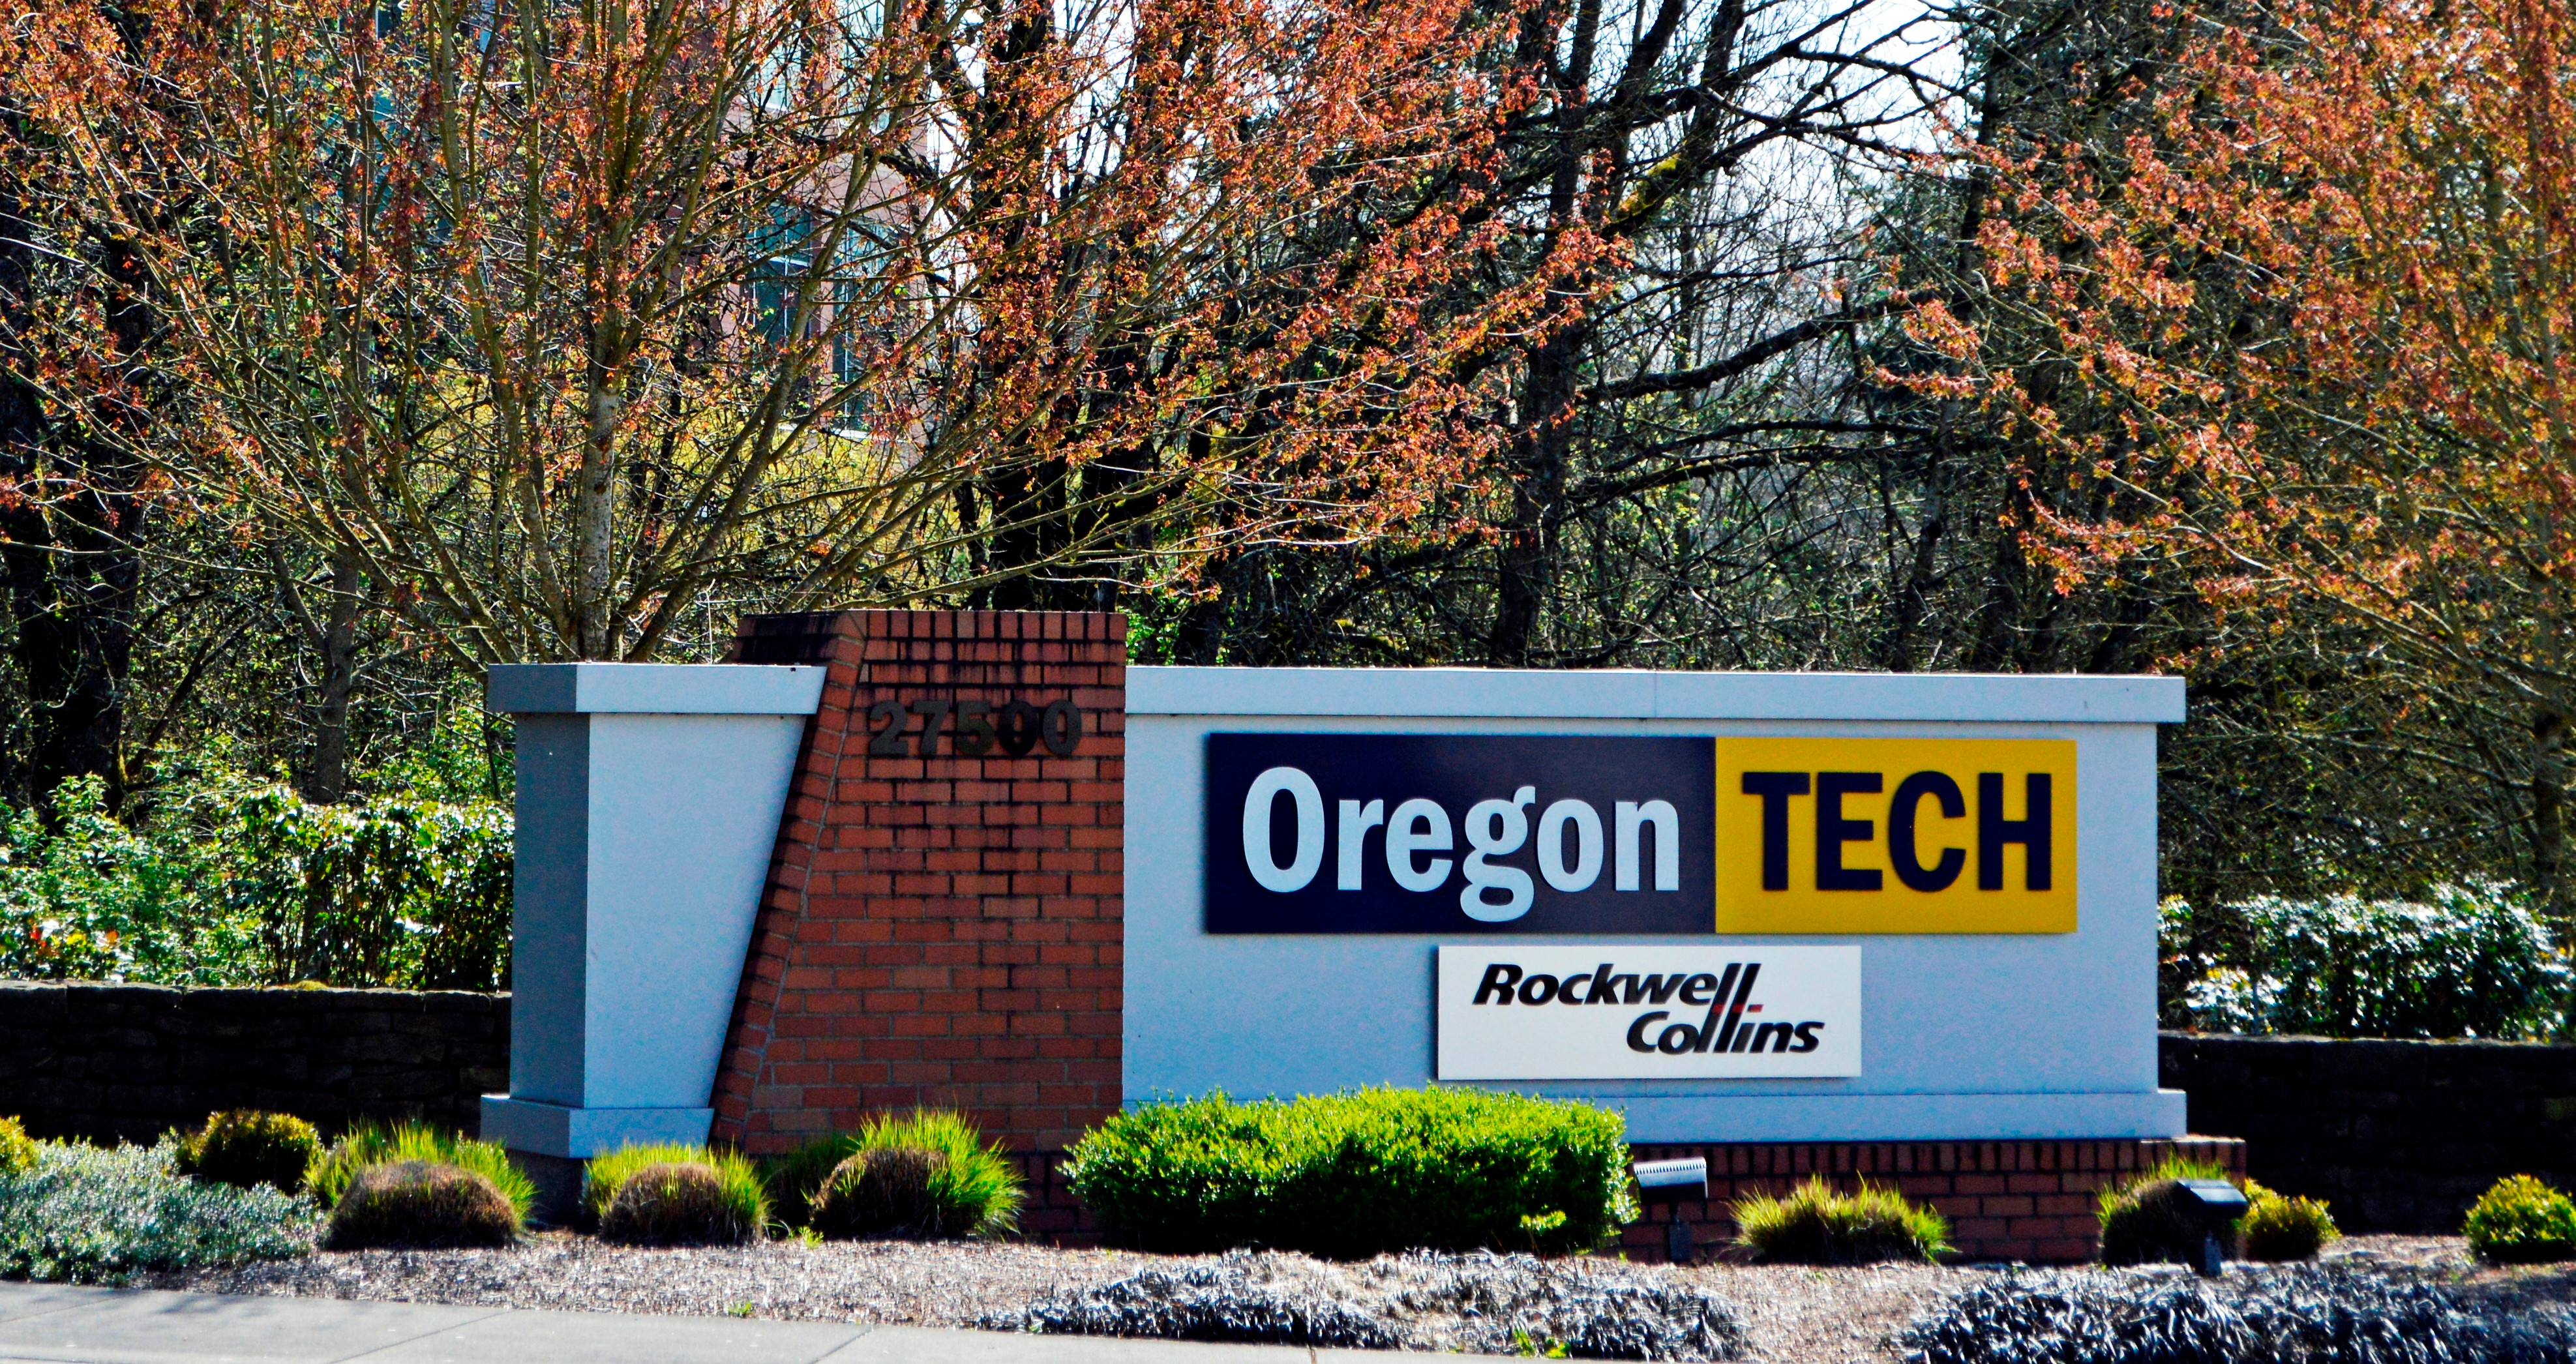 27-oregon-tech-rockwell-collins-wilsonville-oregon-the-kelly-group-real-estate